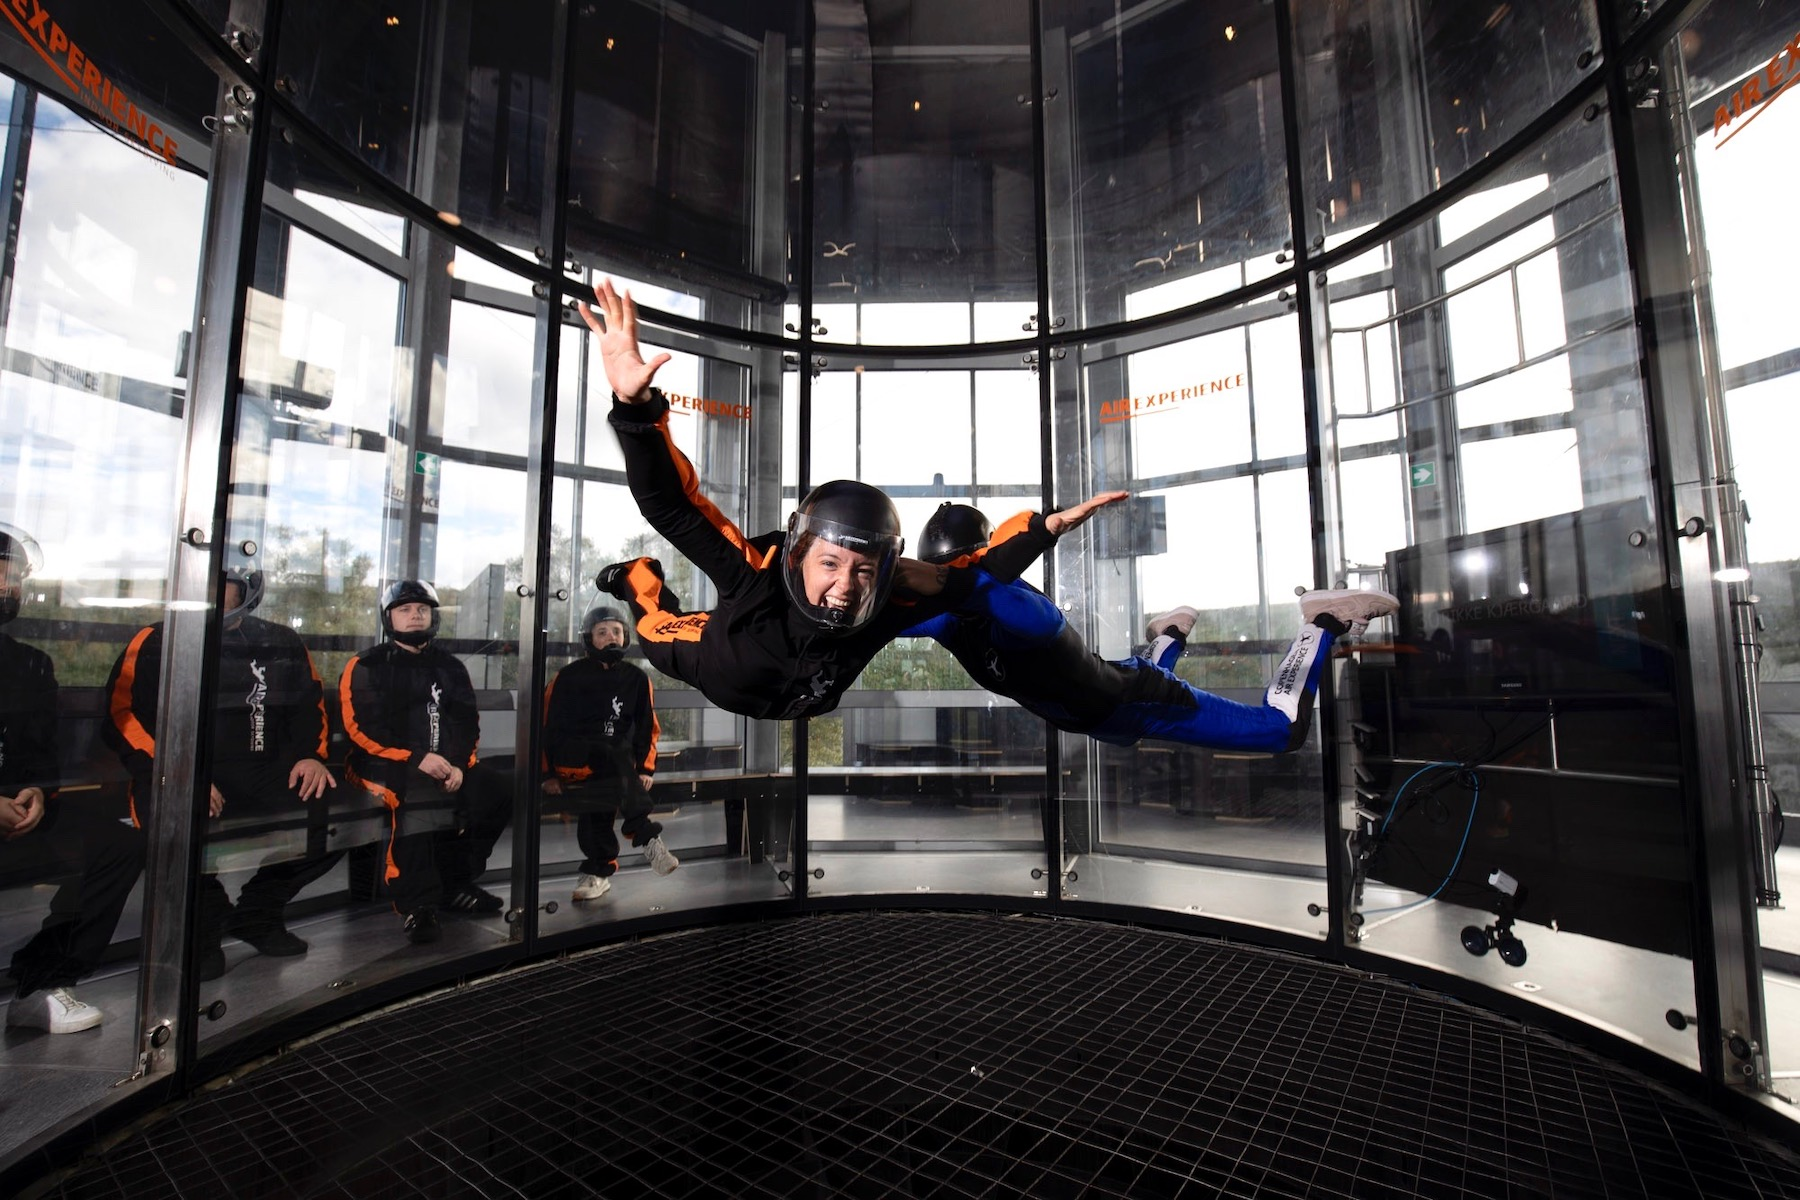 Buy gift card indoor skydiving Copenhagen Air Experience